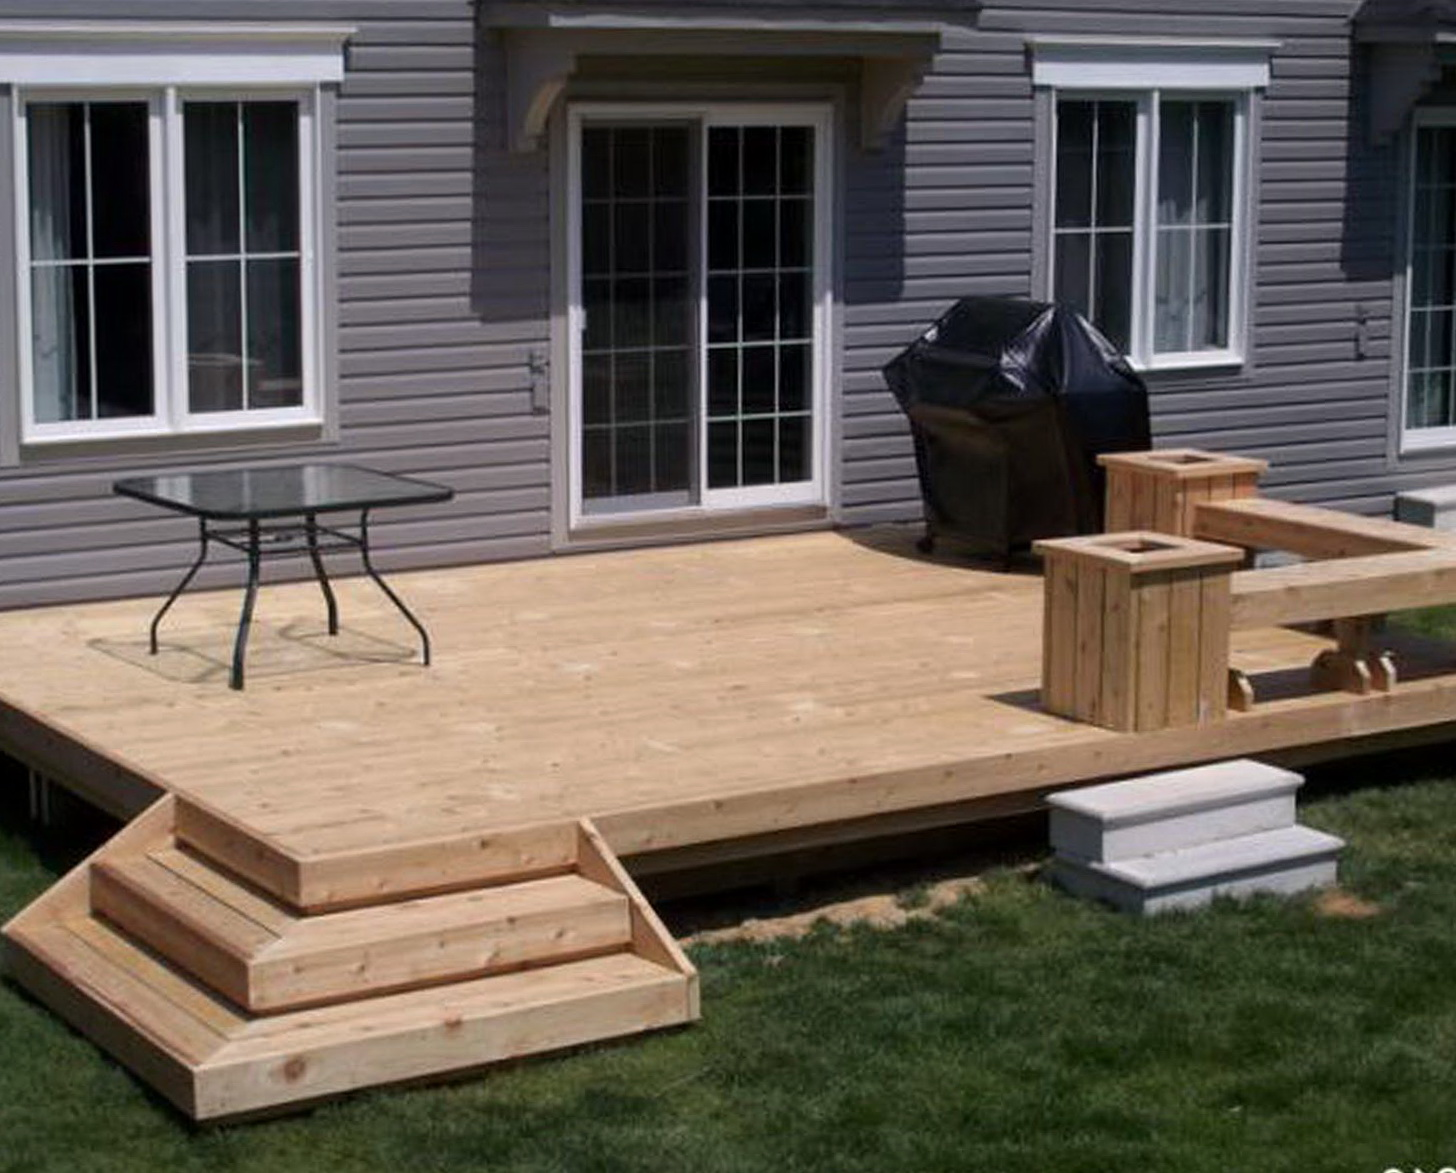 Deck building calculator canada home design ideas for Build my home calculator